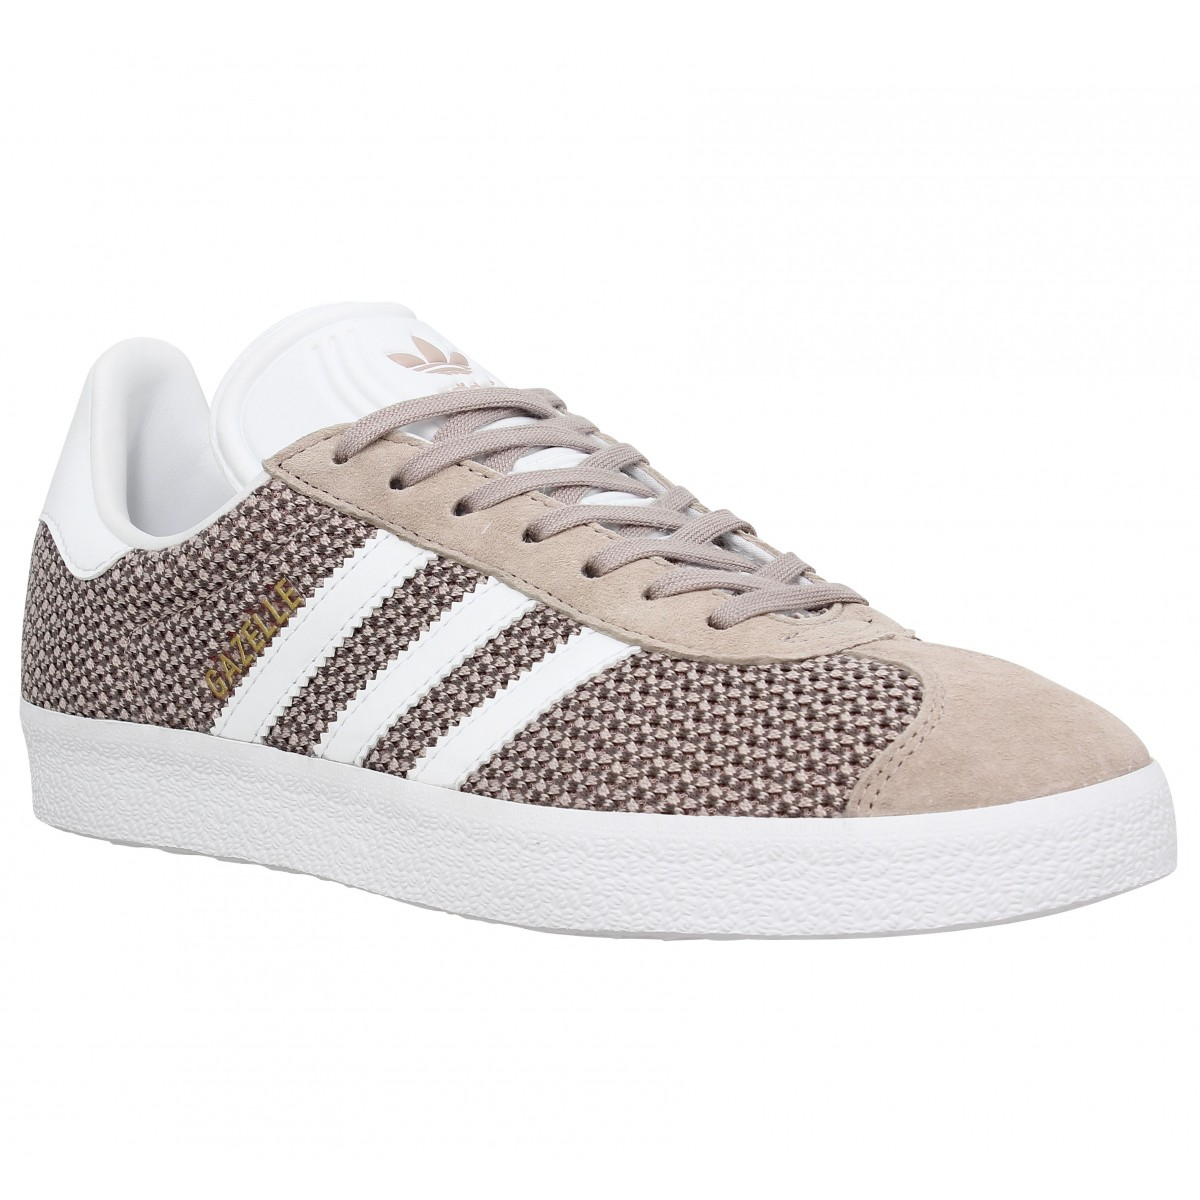 soldes adidas gazelle knit femme grey femme fanny chaussures. Black Bedroom Furniture Sets. Home Design Ideas